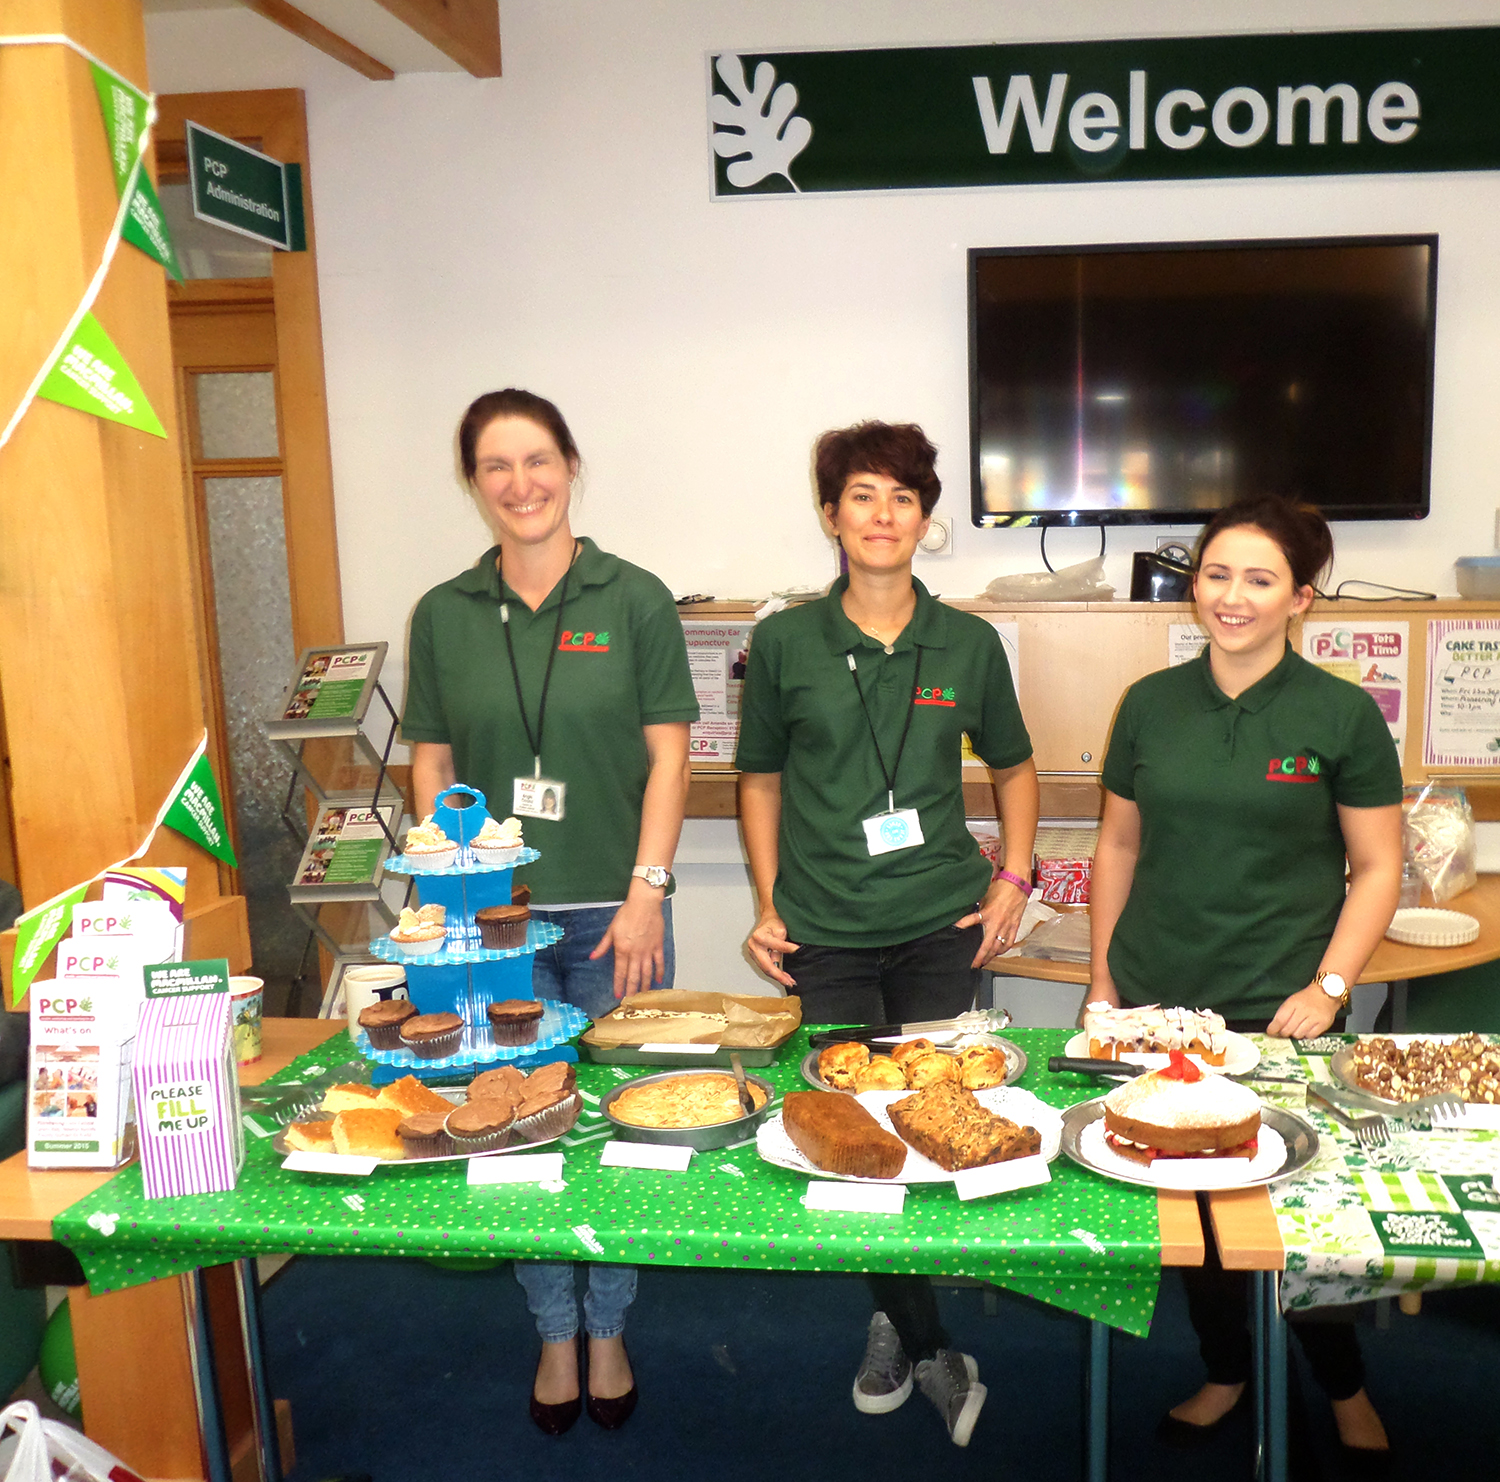 PCP Joins in World's Biggest Coffee Morning